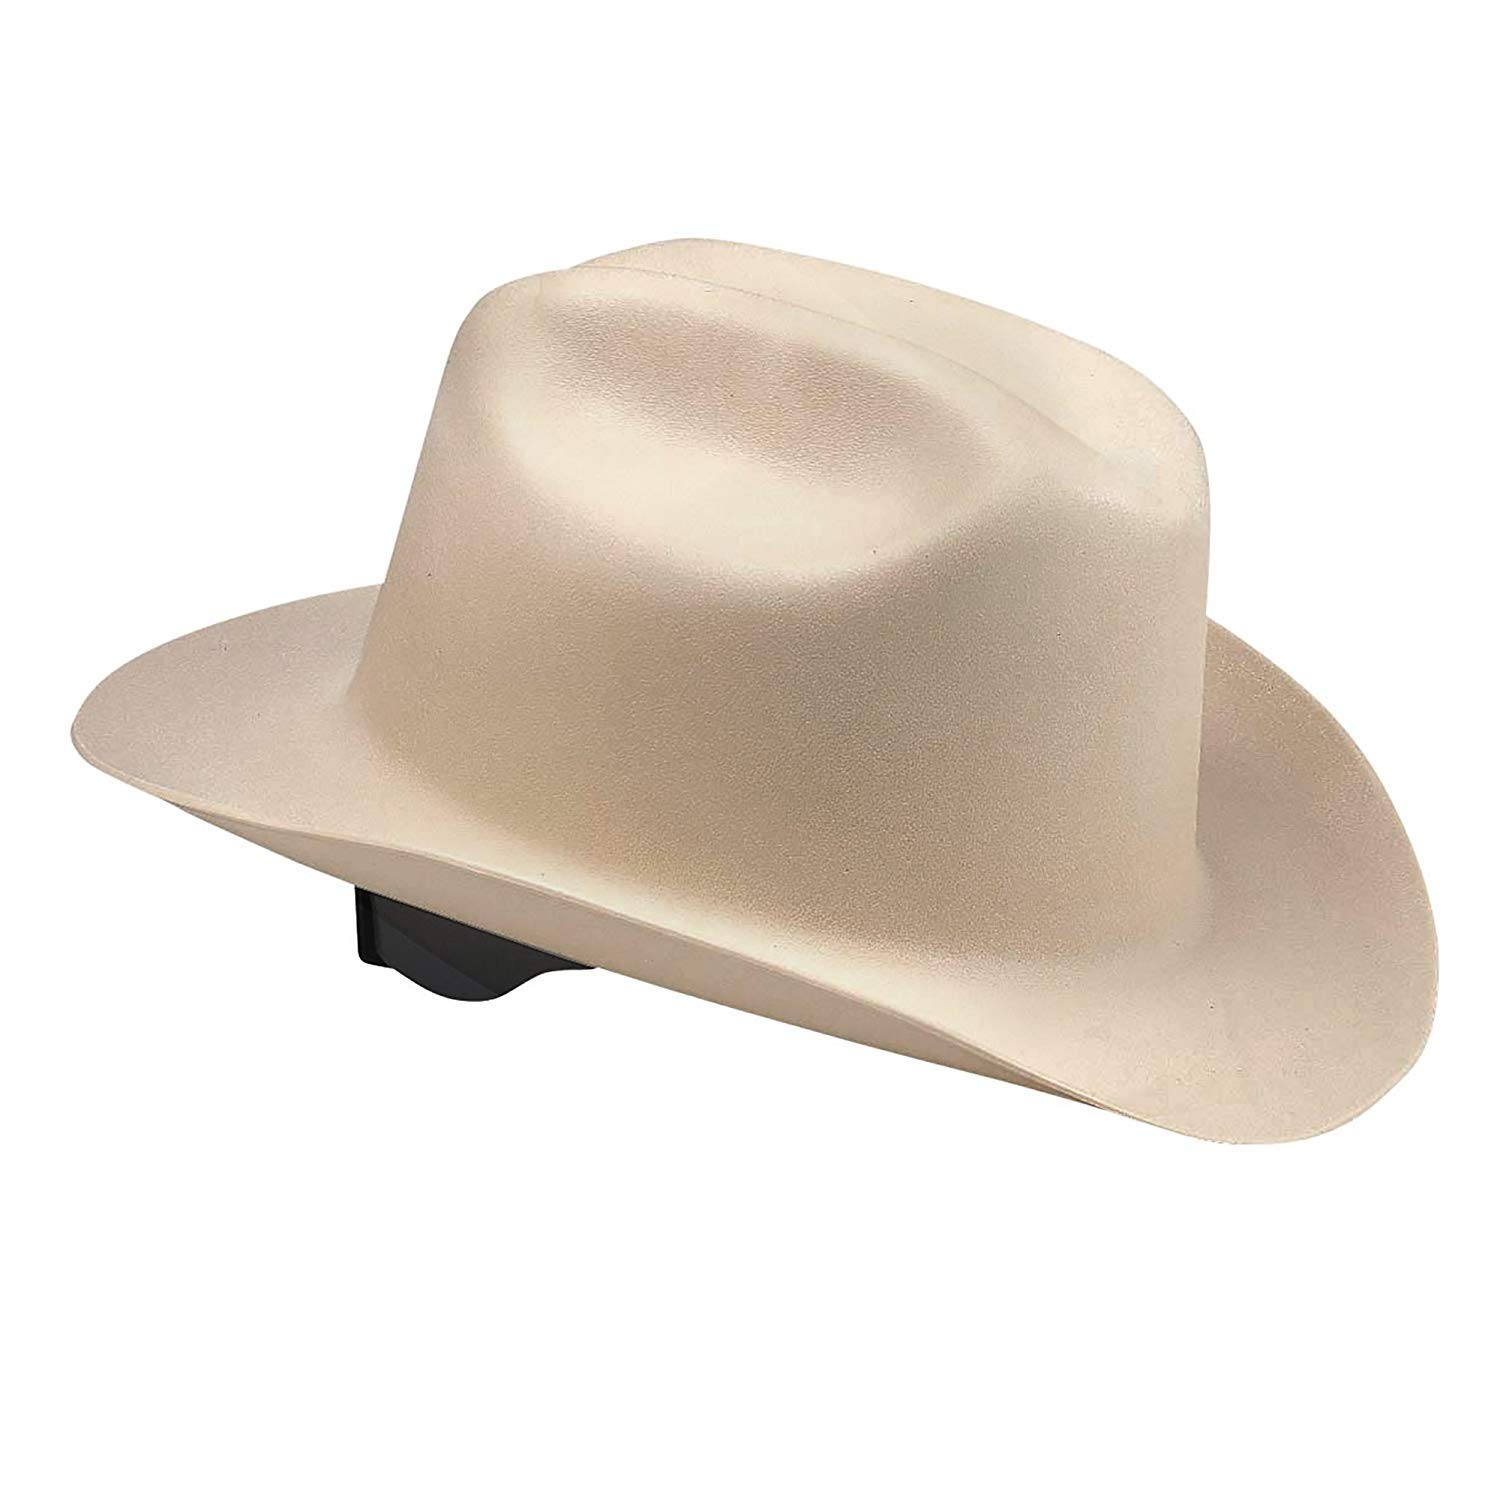 Jackson Western Outlaw Cowboy Hardhat, Tan by Jackson Safety